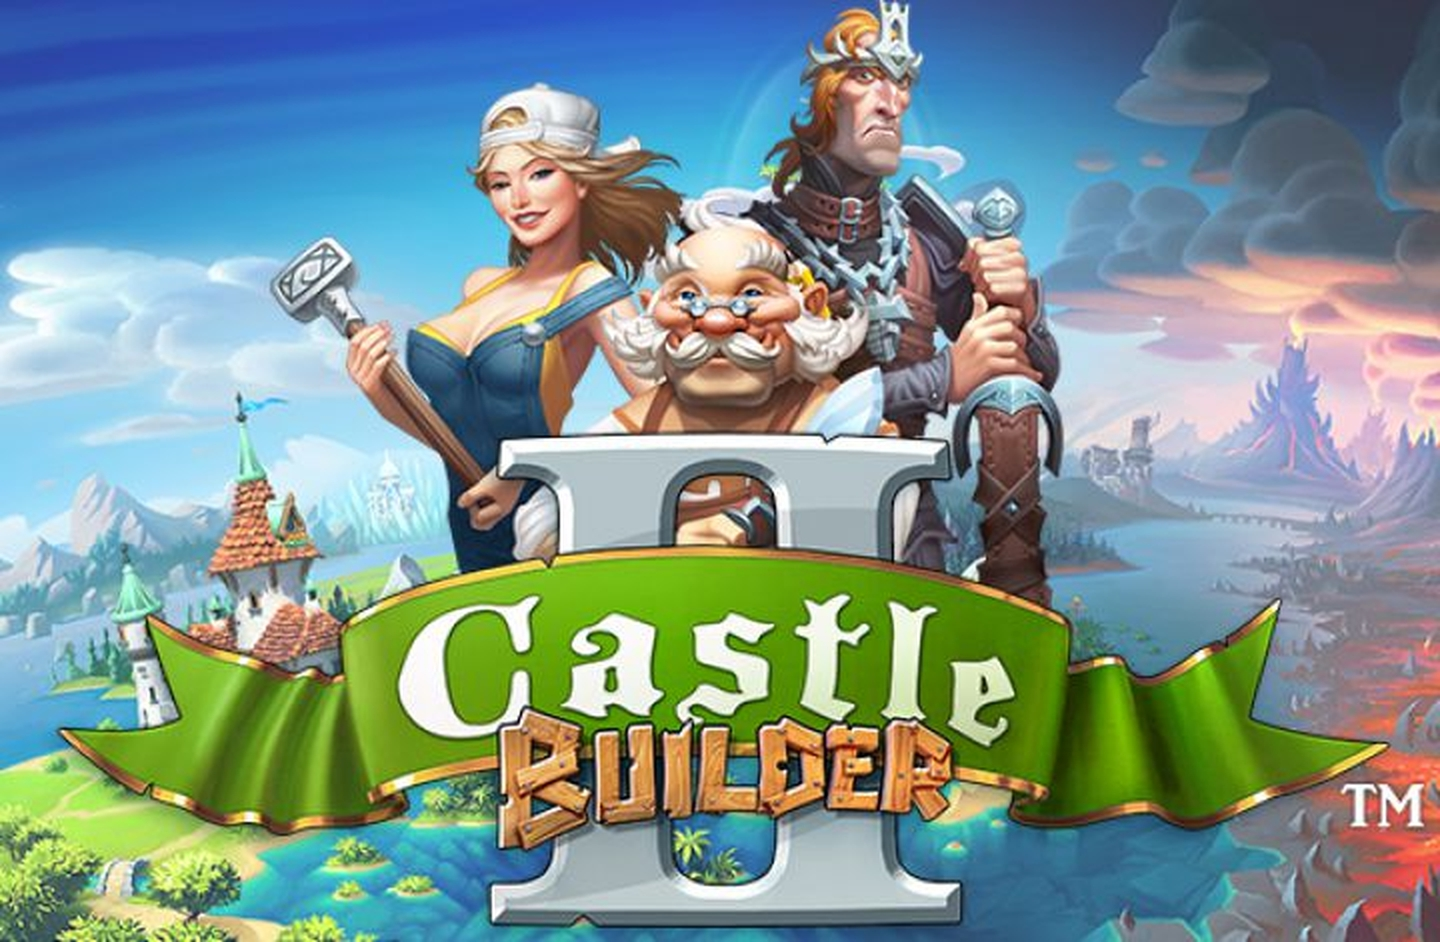 The Castle Builder II Online Slot Demo Game by Rabcat